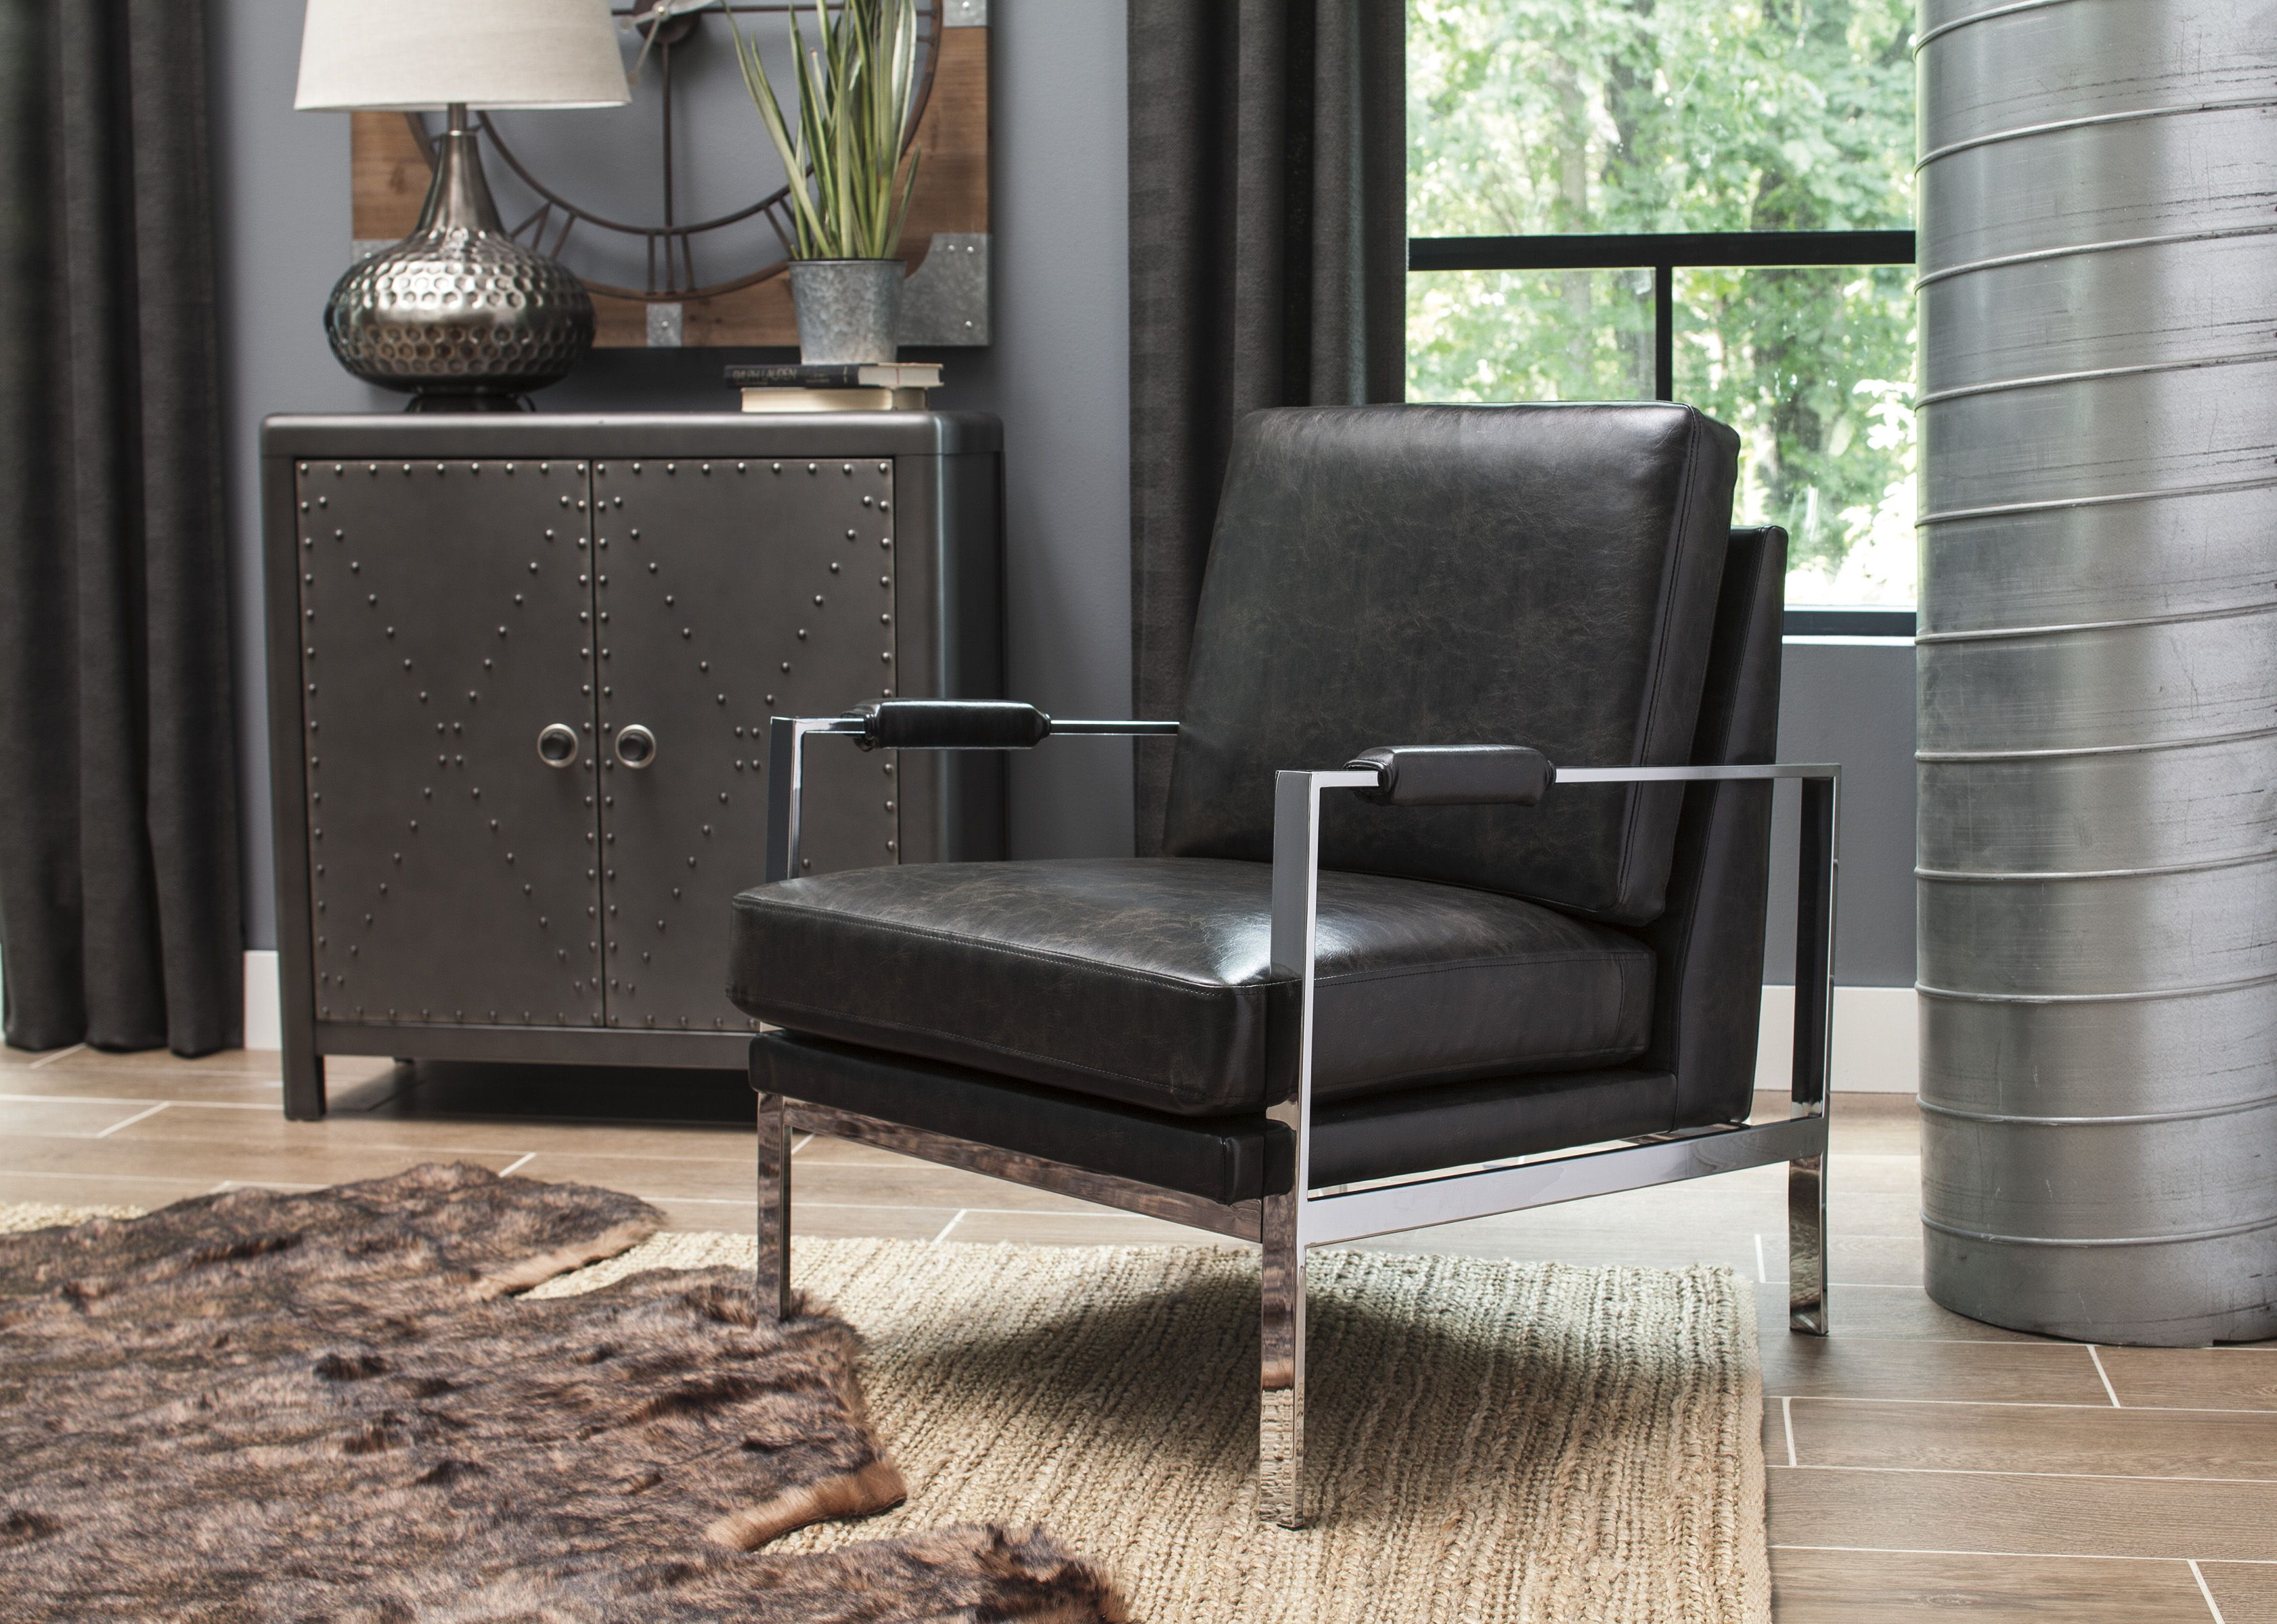 Network Accent Chair Work An Ultra Cool Look With The Network